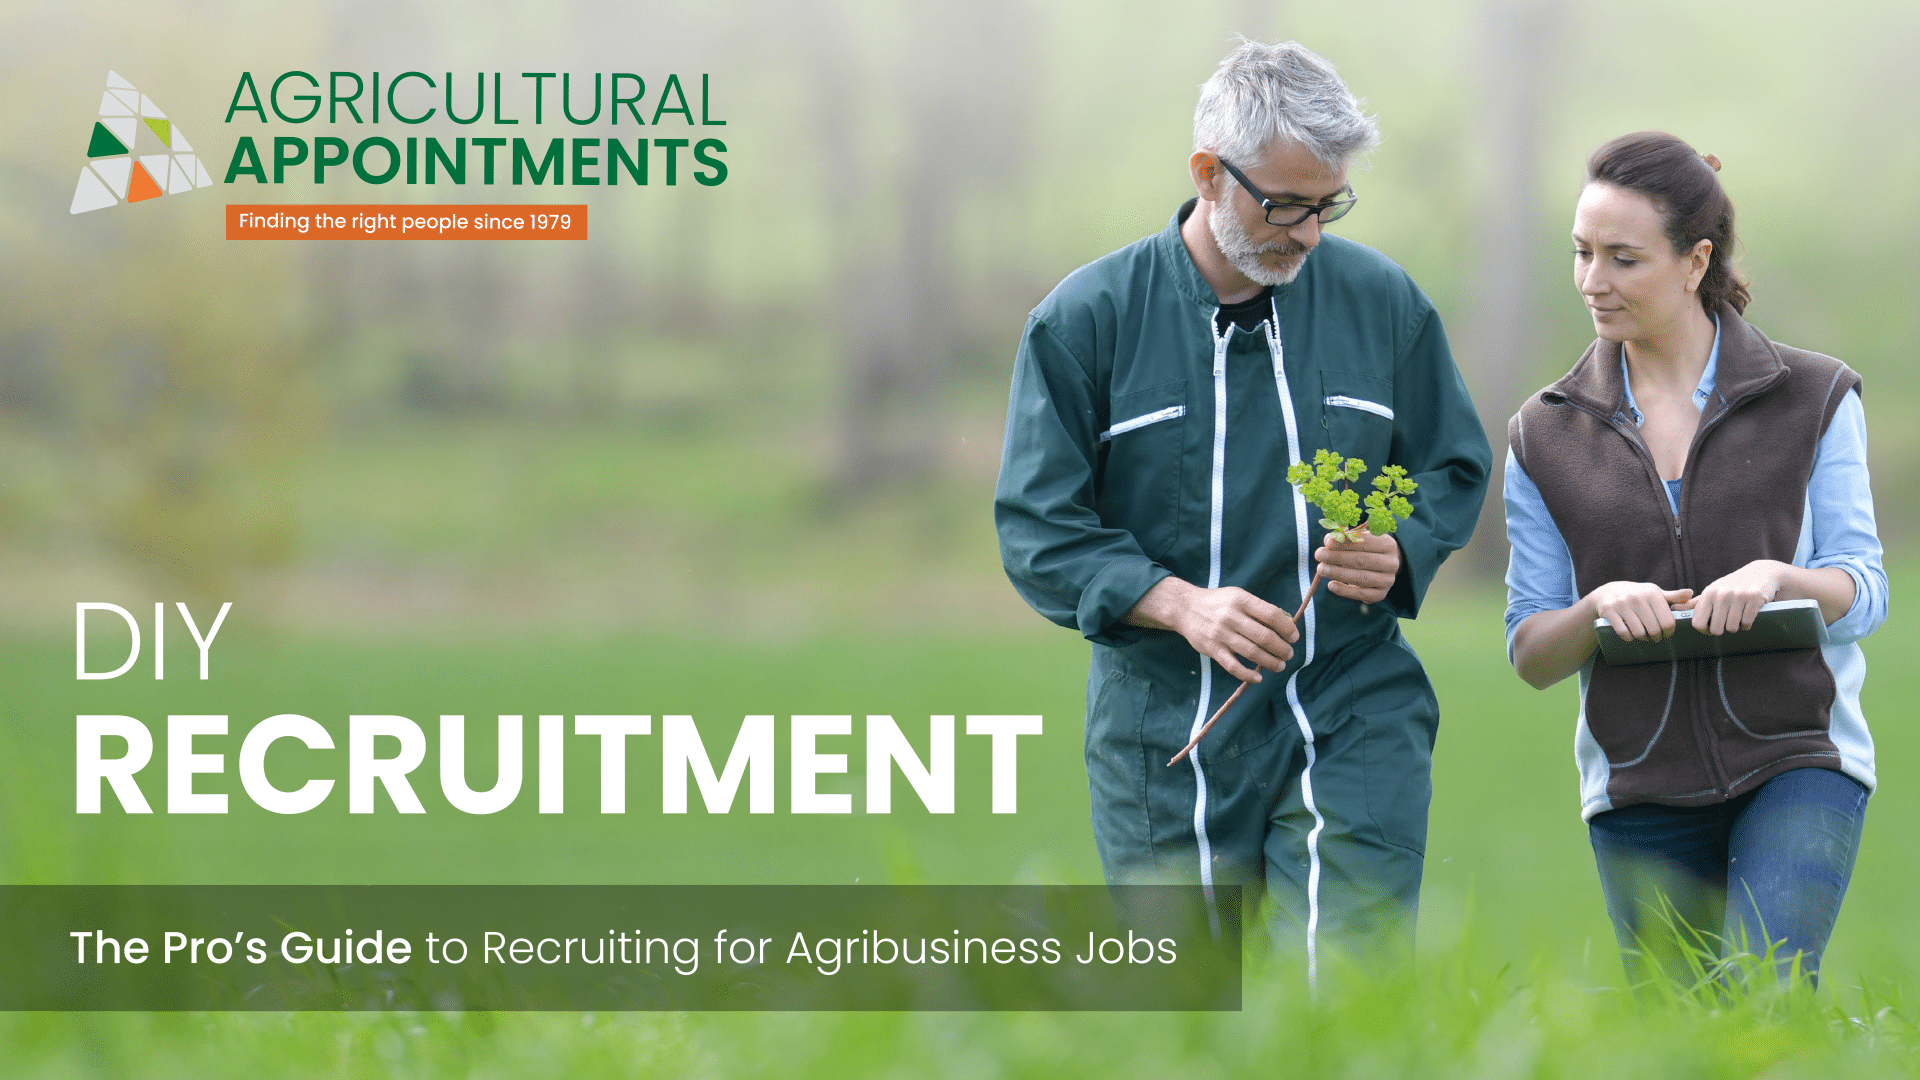 DIY Recruitment Guide (e-copy) - Agribusiness Recruiting - Agricultural Appointments